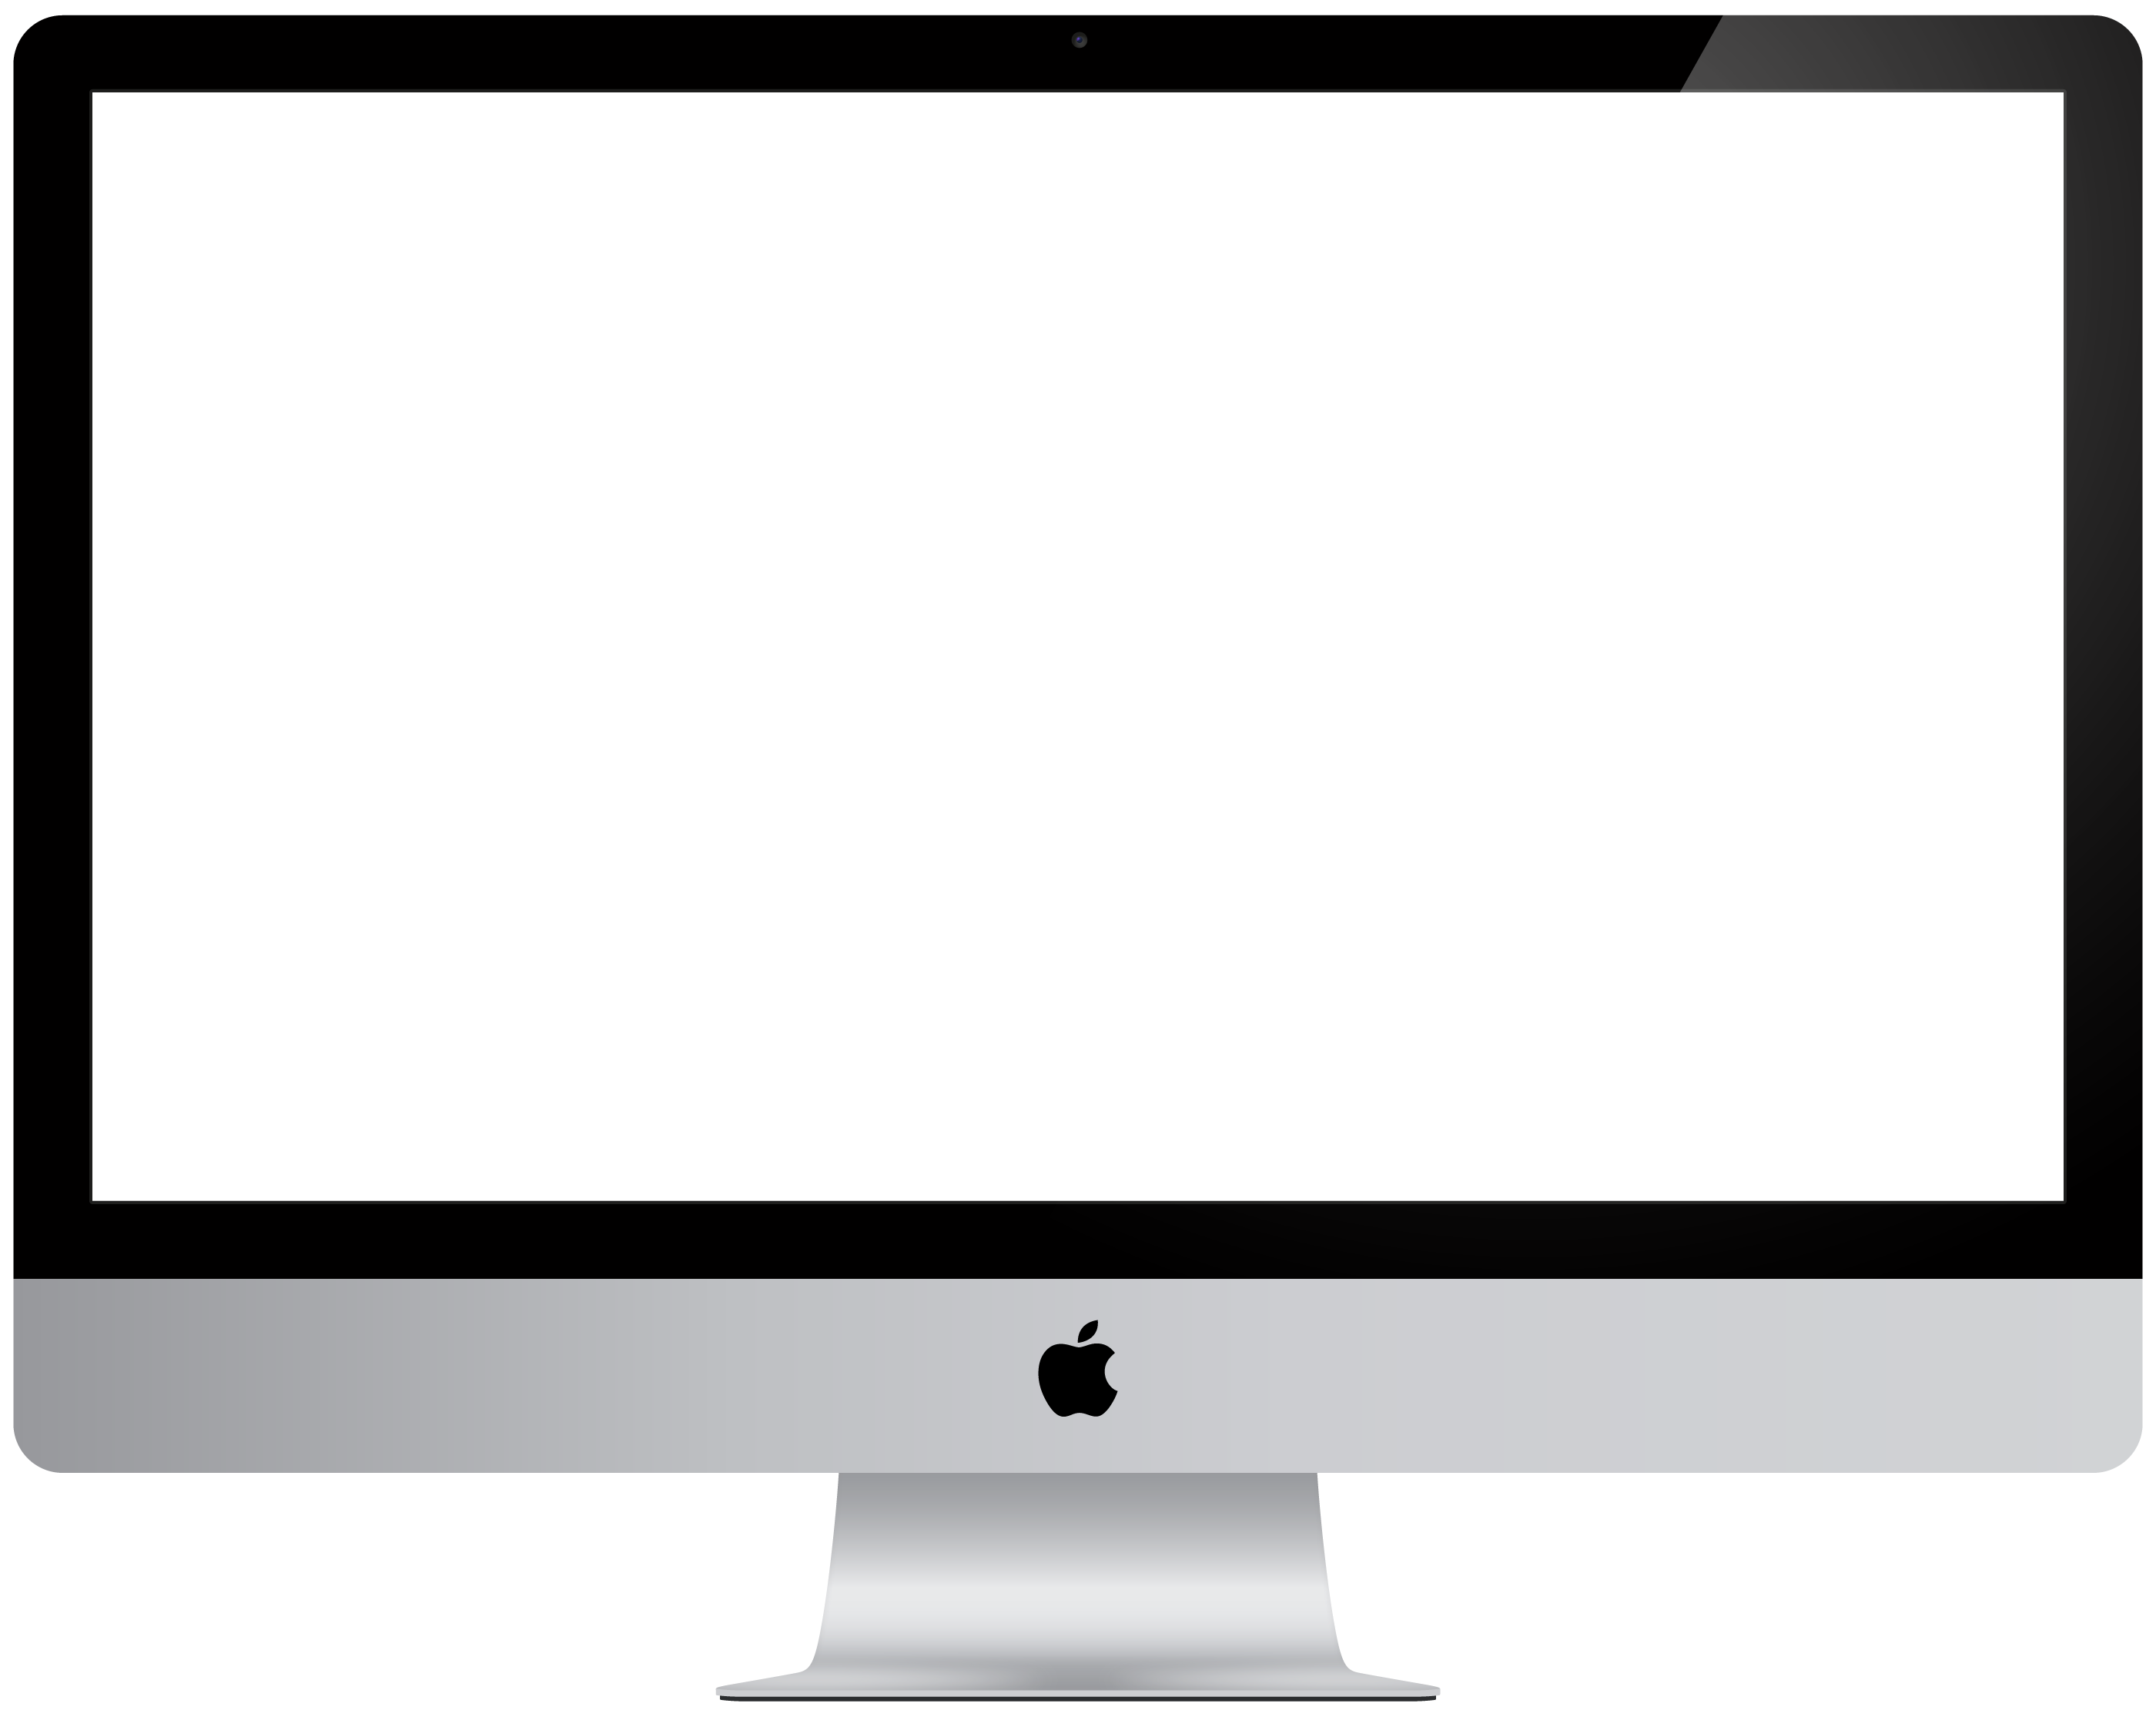 collection of mac. Clipart ruler computer